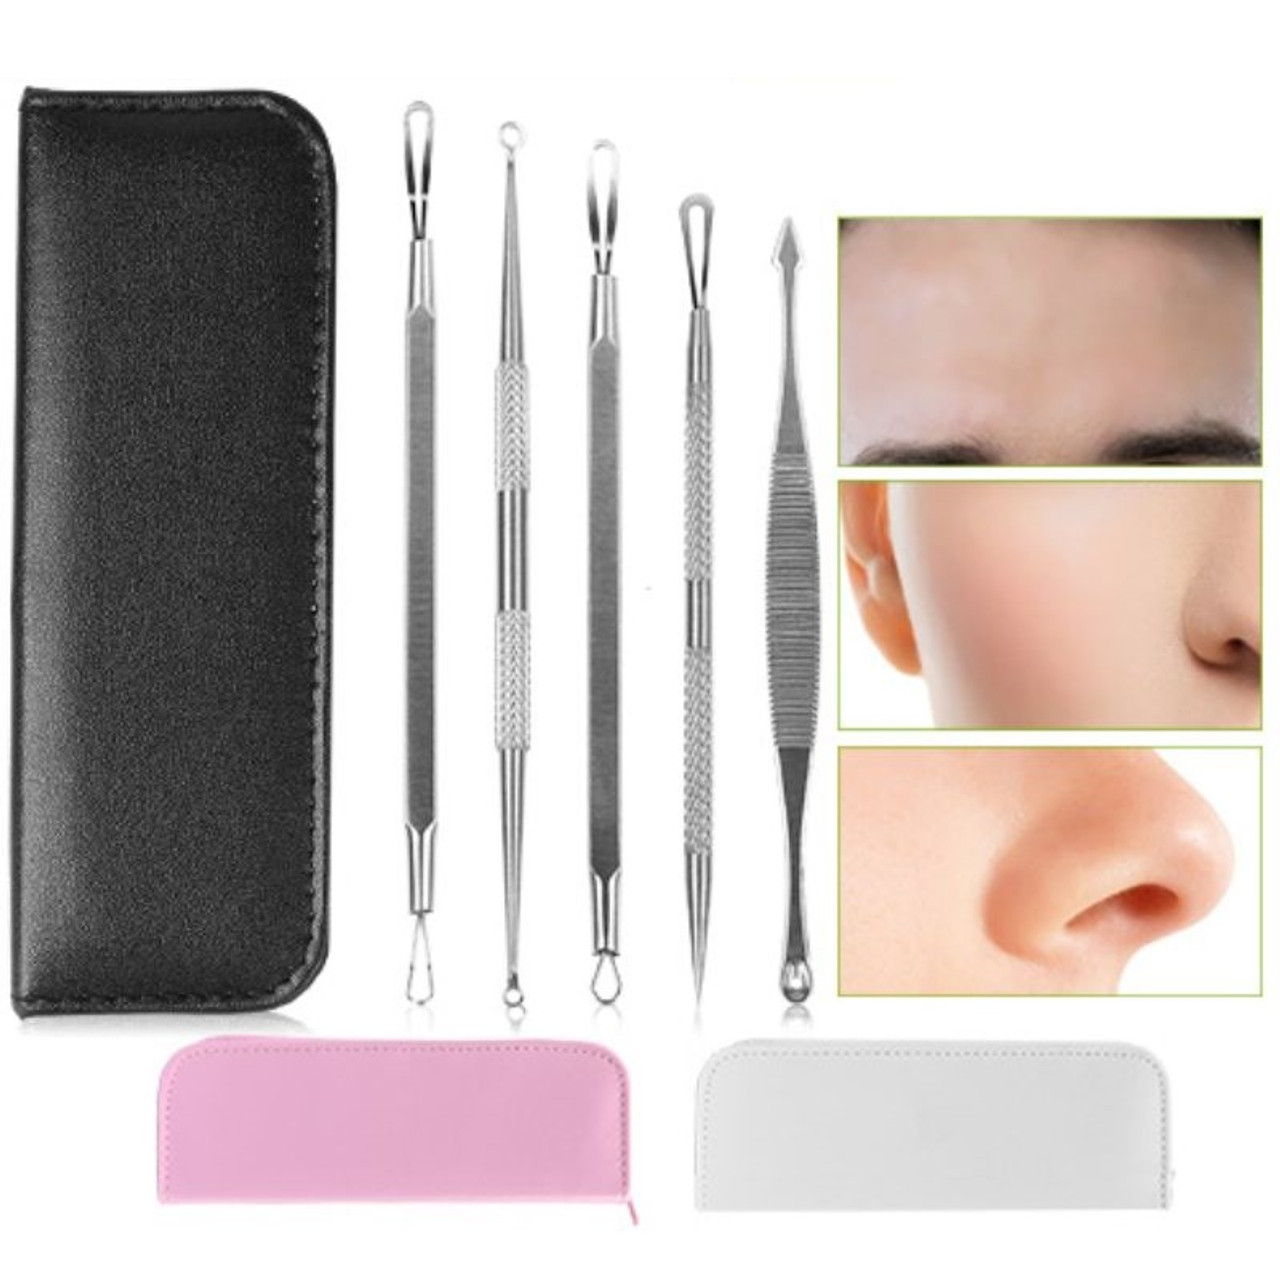 Blemish and Pimple Extractor Tools - 5 Piece Set